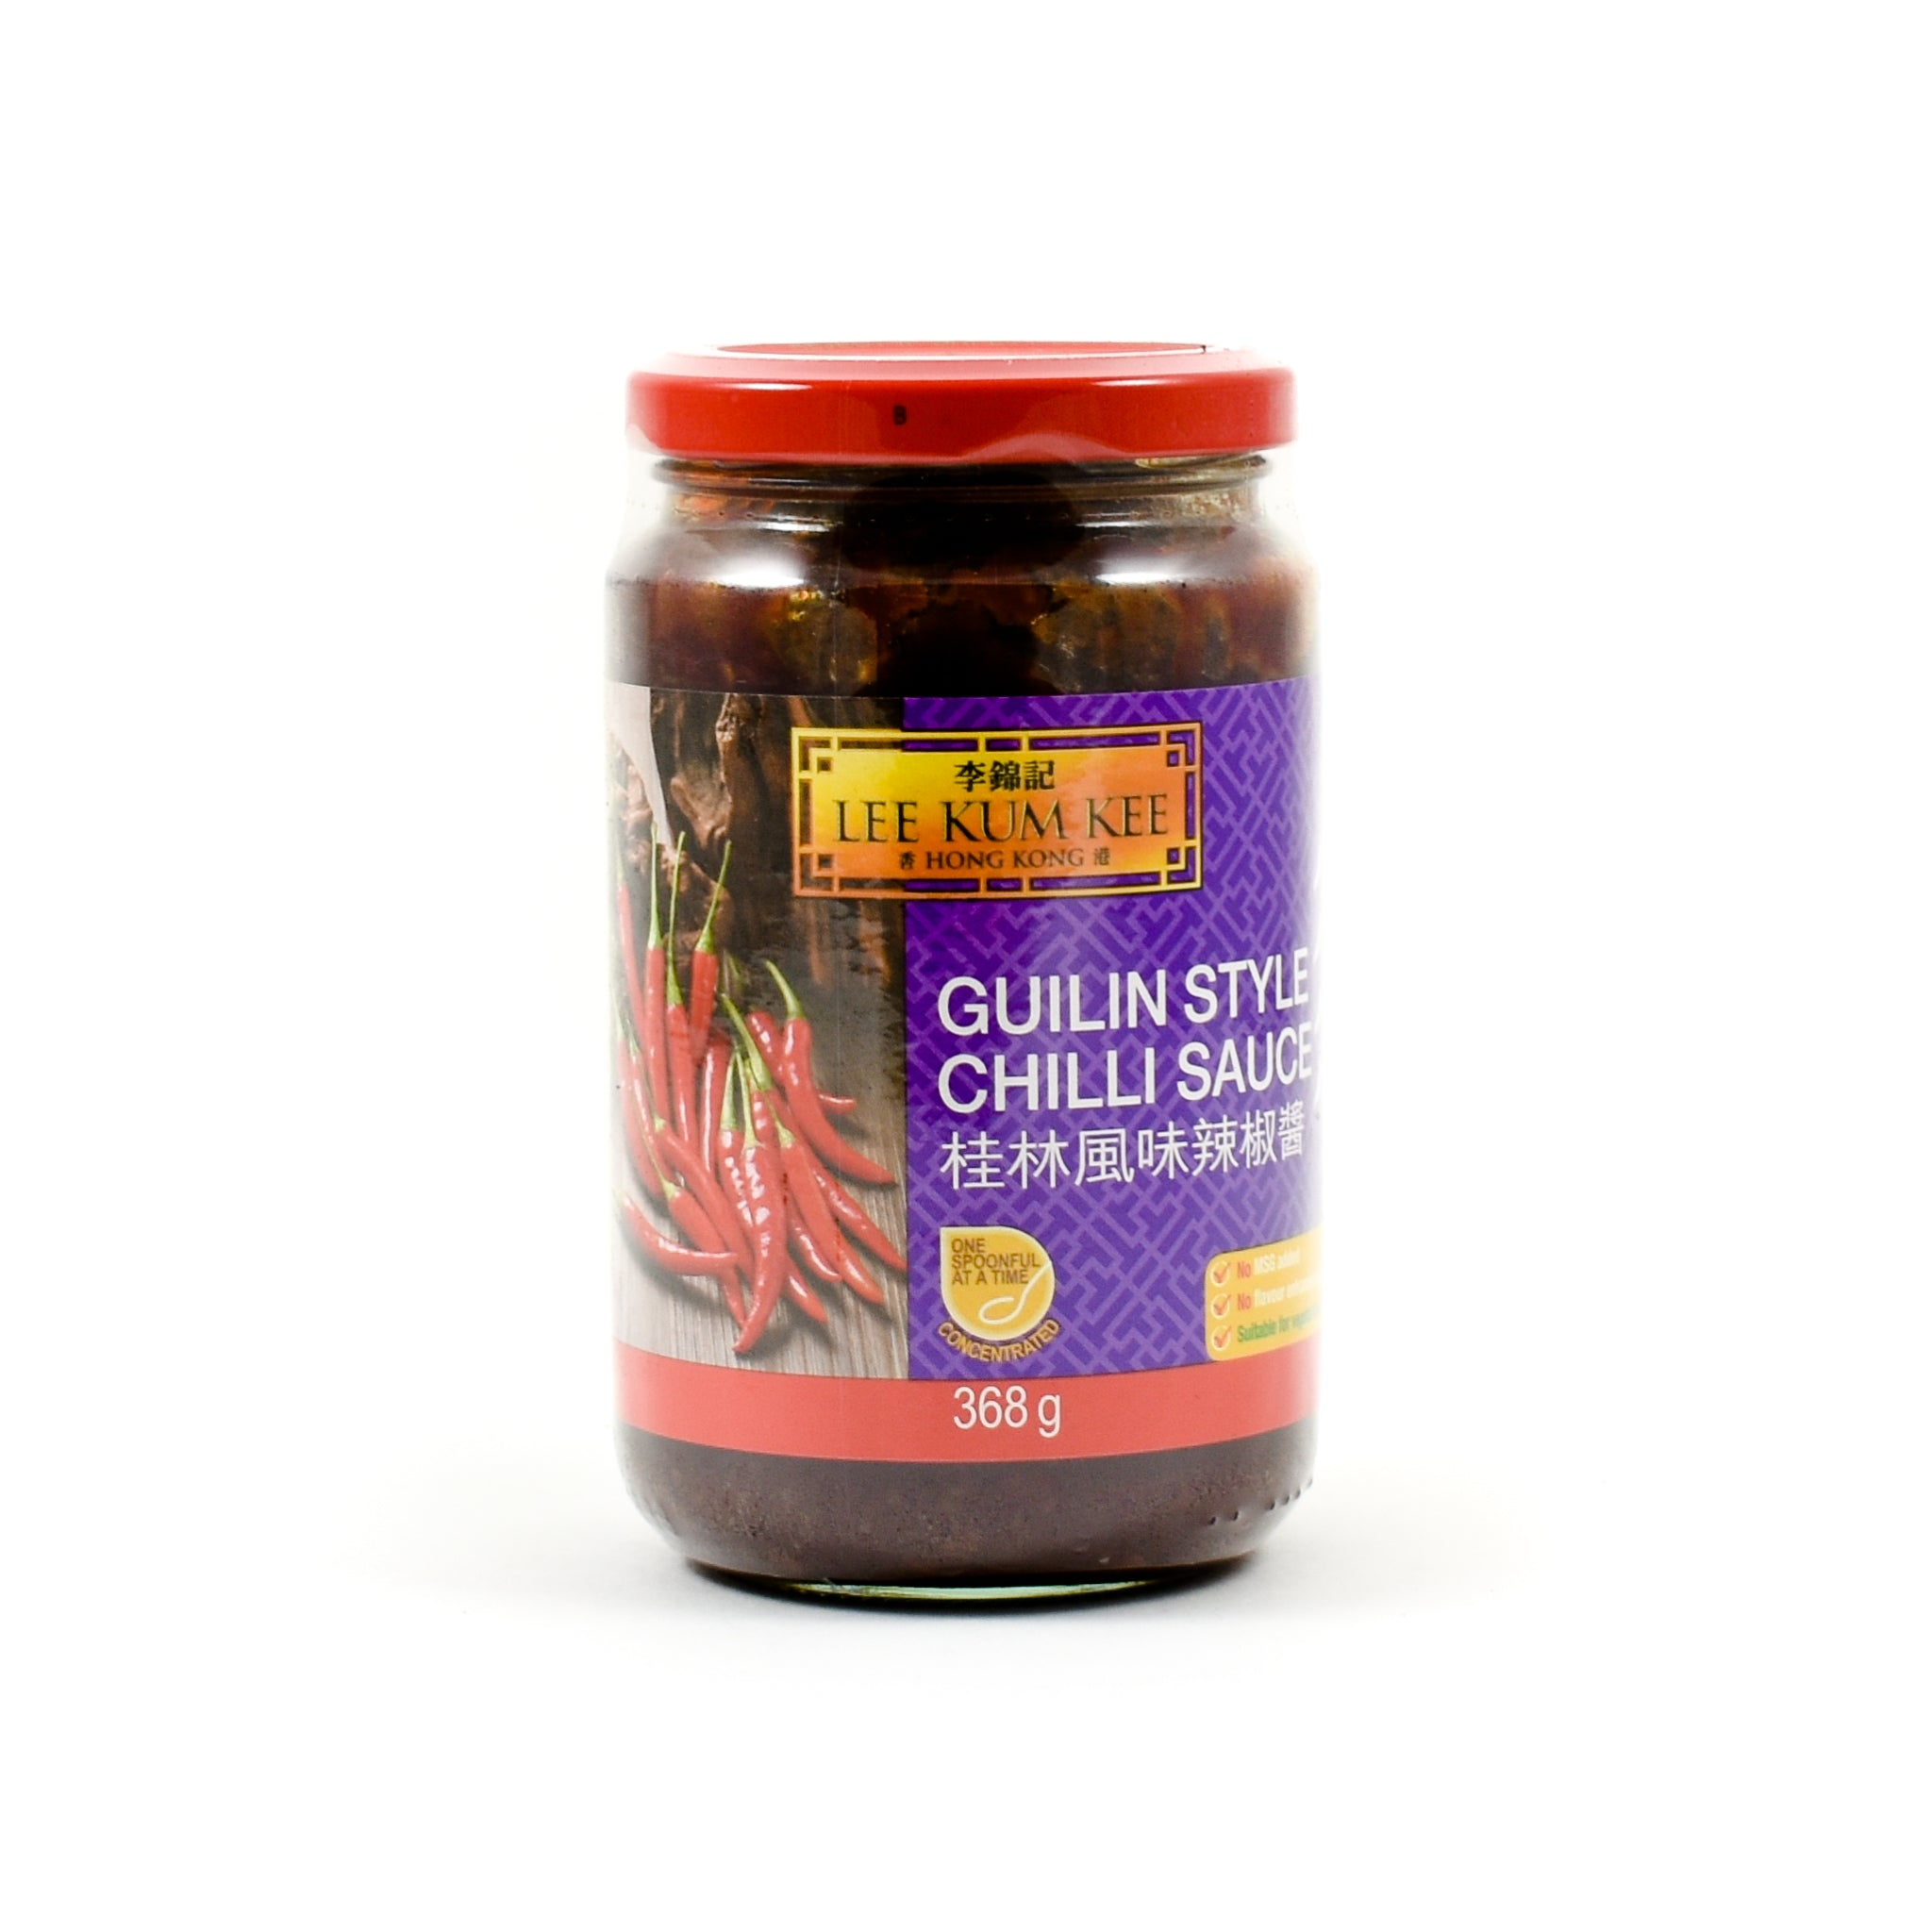 Lee Kum Kee Guilin Chilli Sauce 368g Ingredients Sauces & Condiments Asian Sauces & Condiments Chinese Food